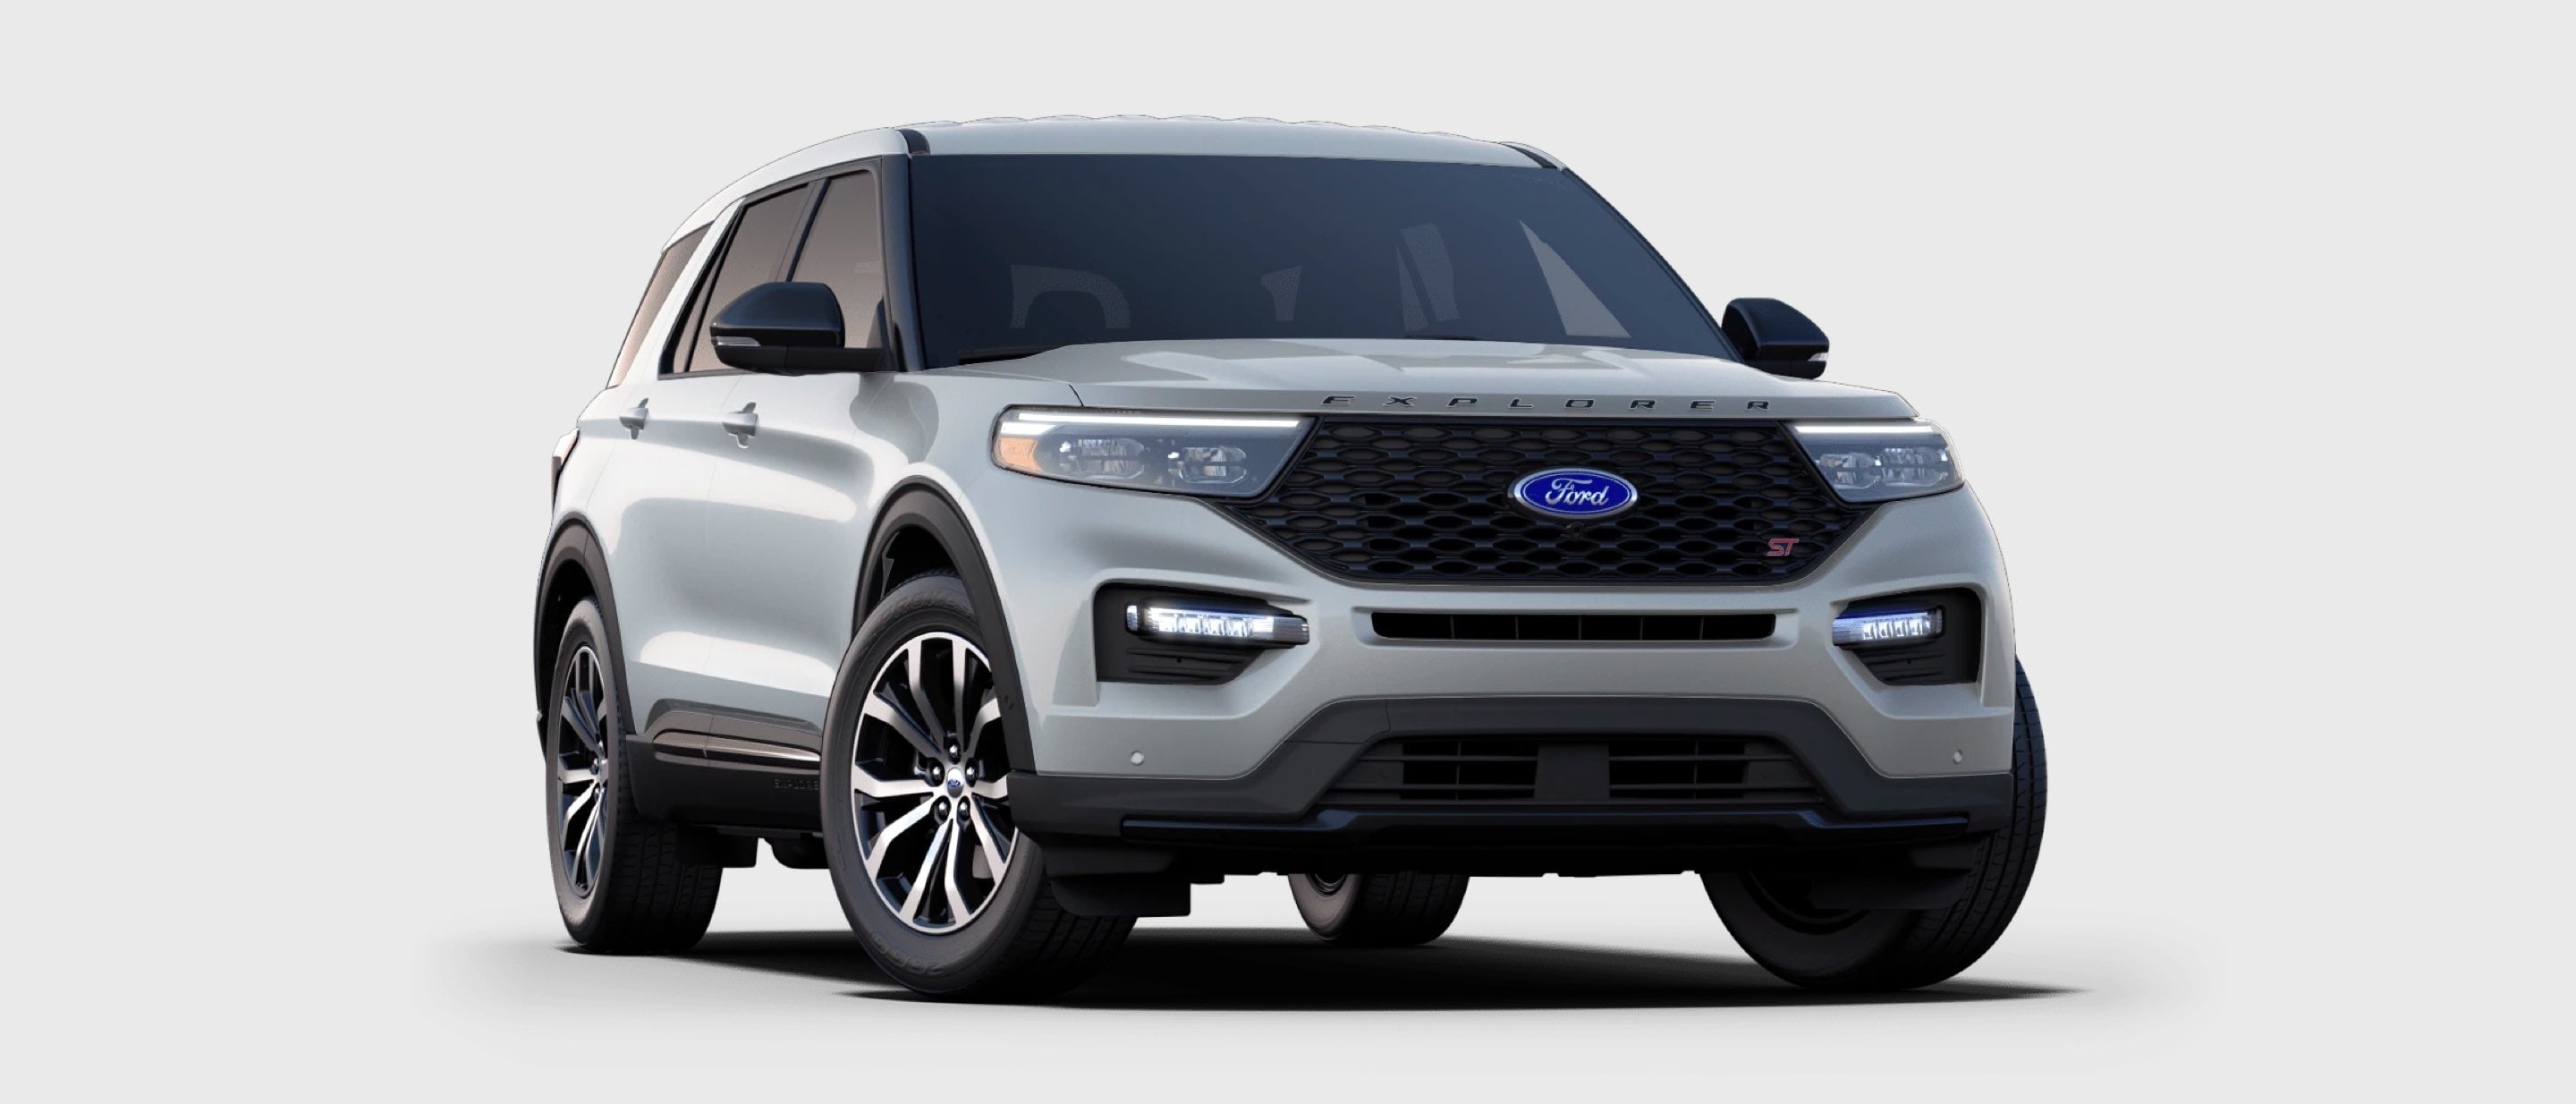 2021 Ford Explorer ST in Iconic Silver